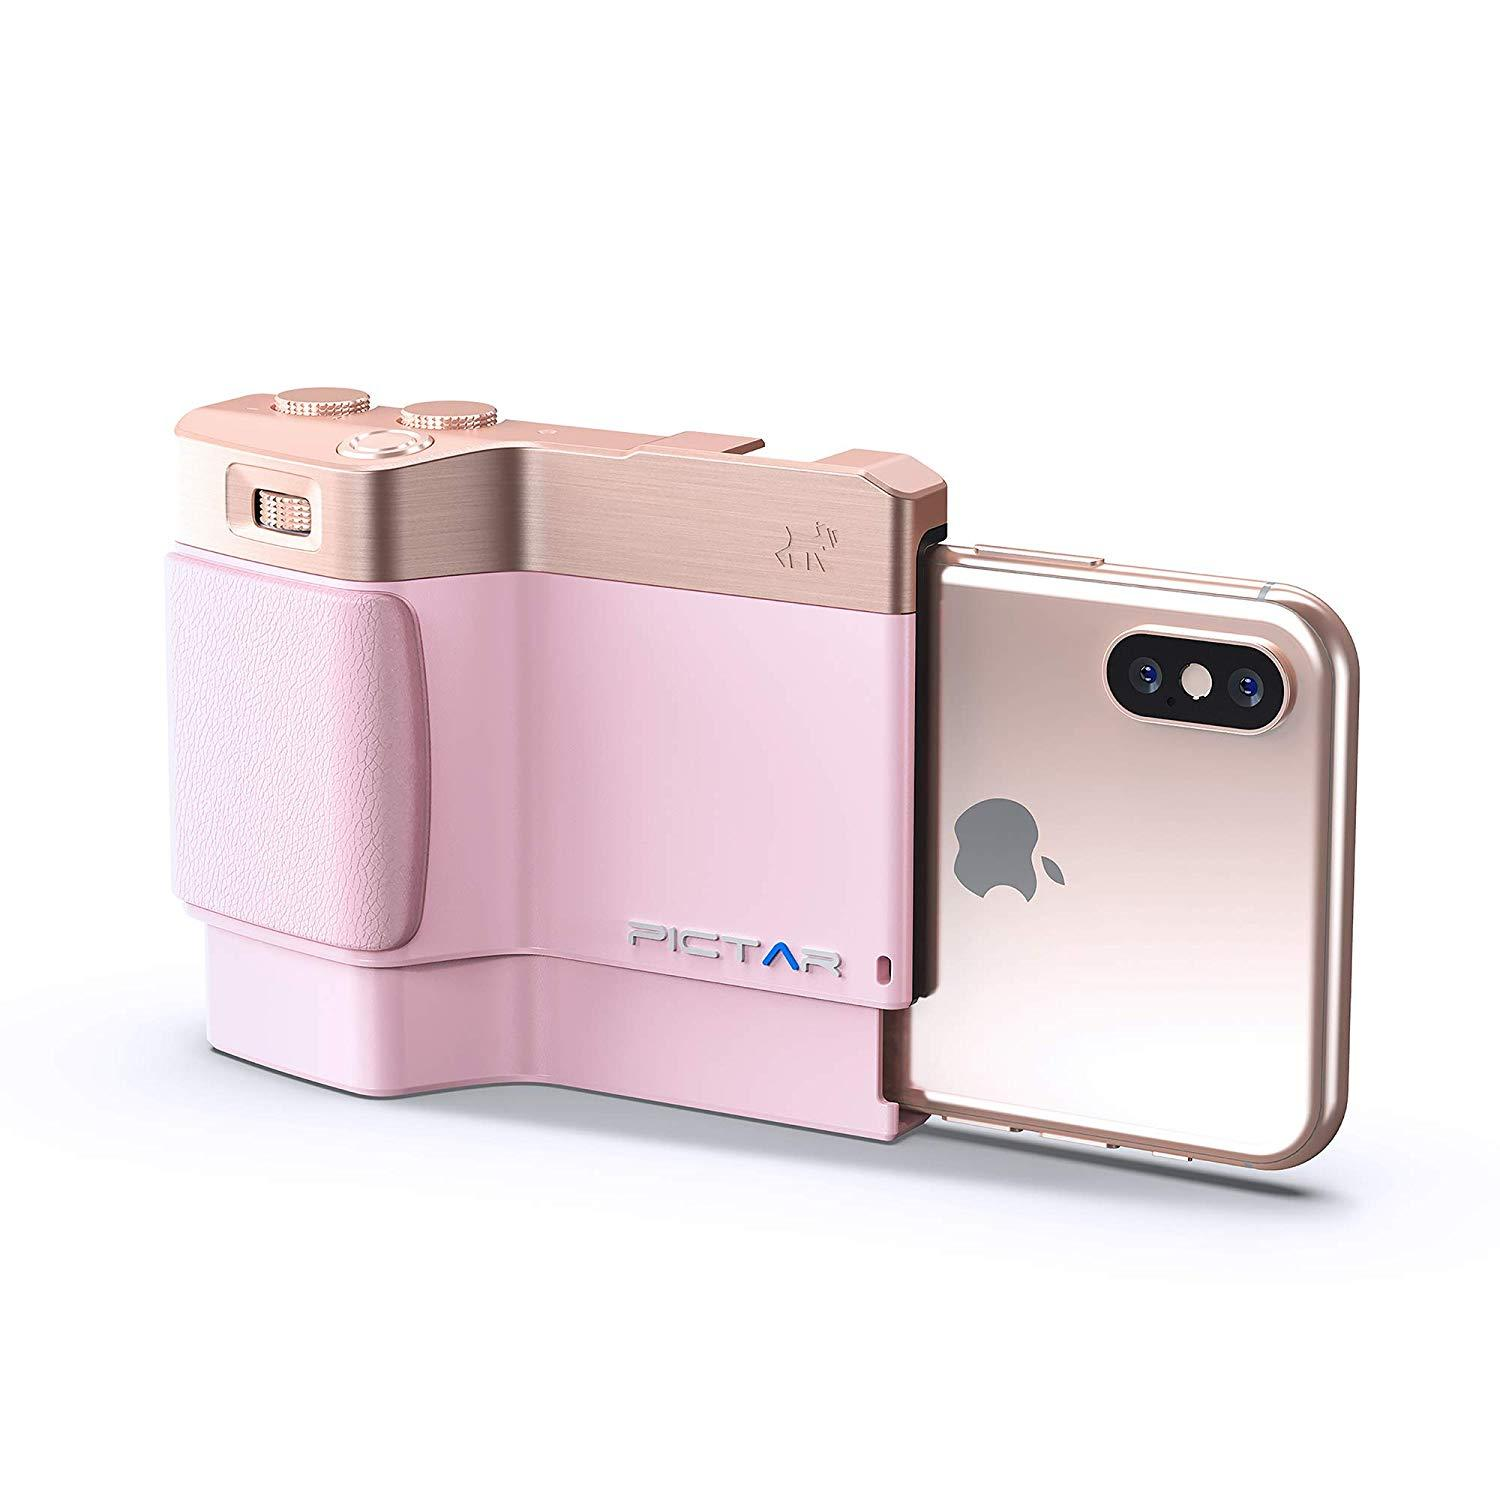 Pictar One Plus Mk II - Farbe: Roségold